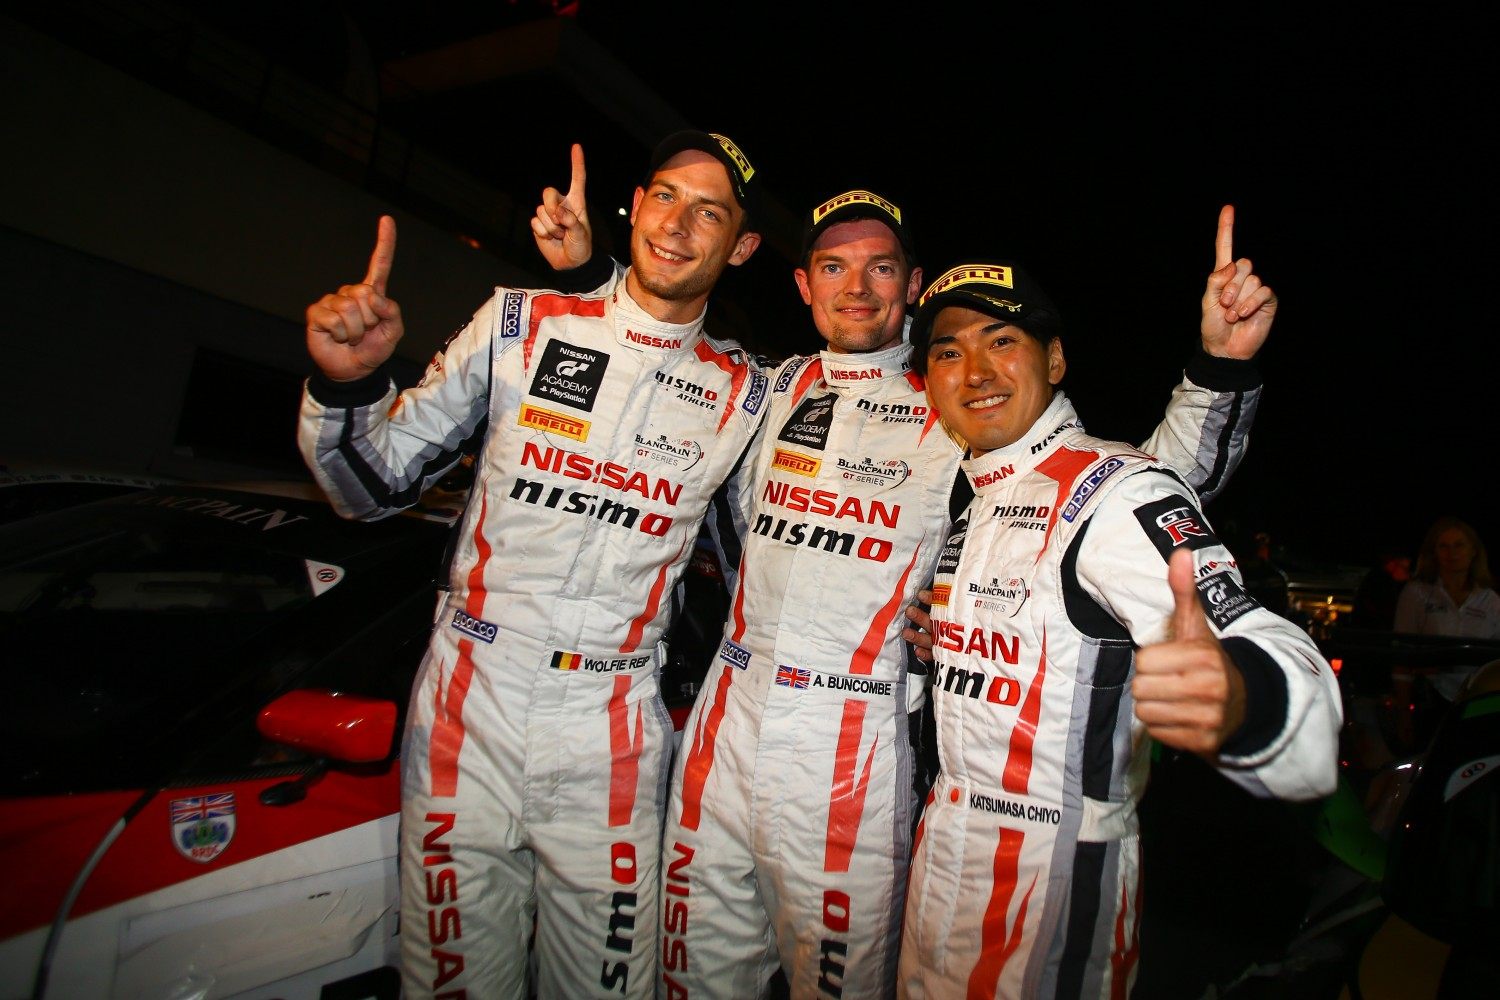 News flash : Nissan takes maiden win in Circuit Paul Ricard